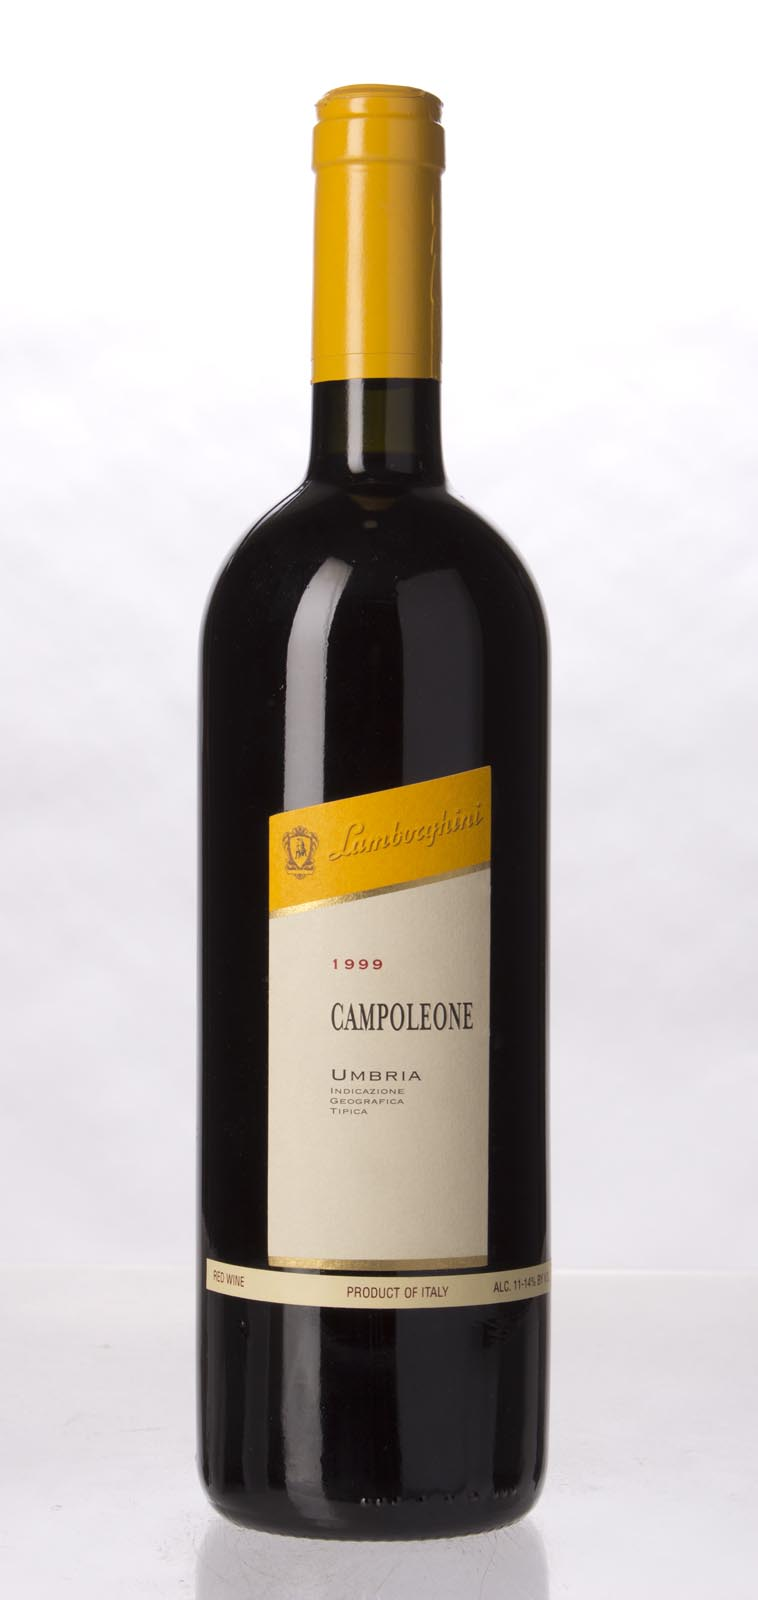 Lamborghini (La Fiorita) Campoleone 1999, 750mL (WA96) from The BPW - Merchants of rare and fine wines.